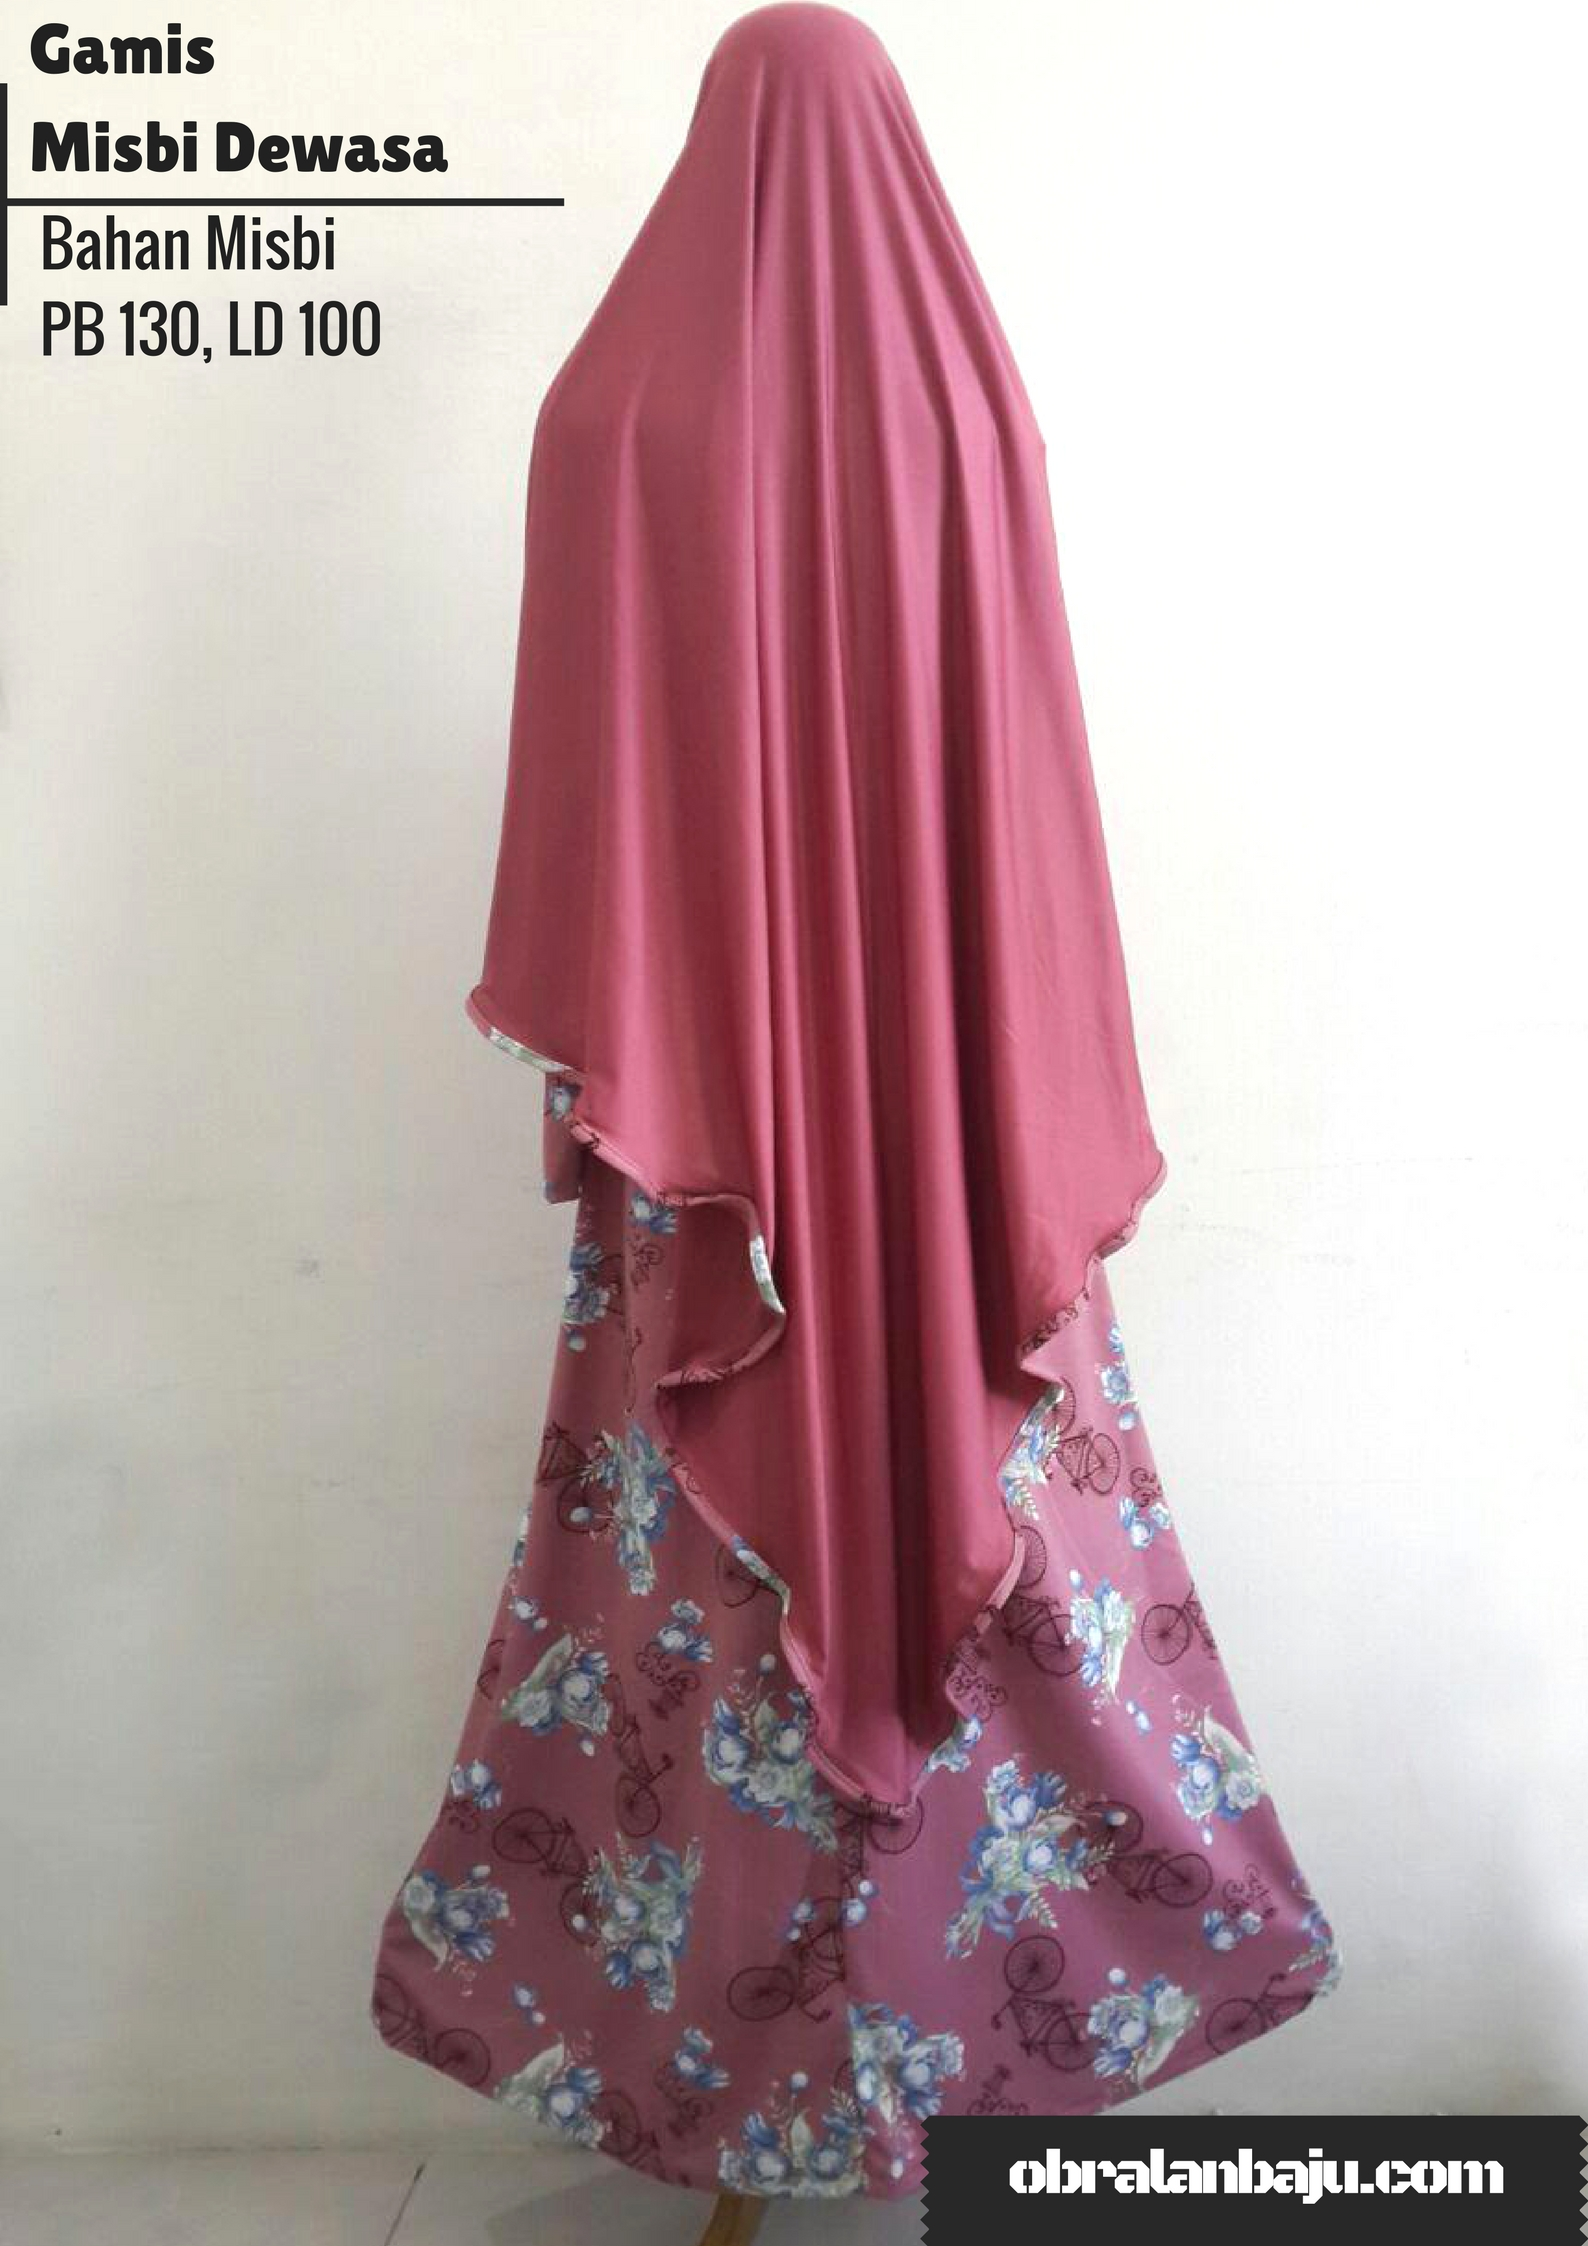 supplier gamis misbi murah